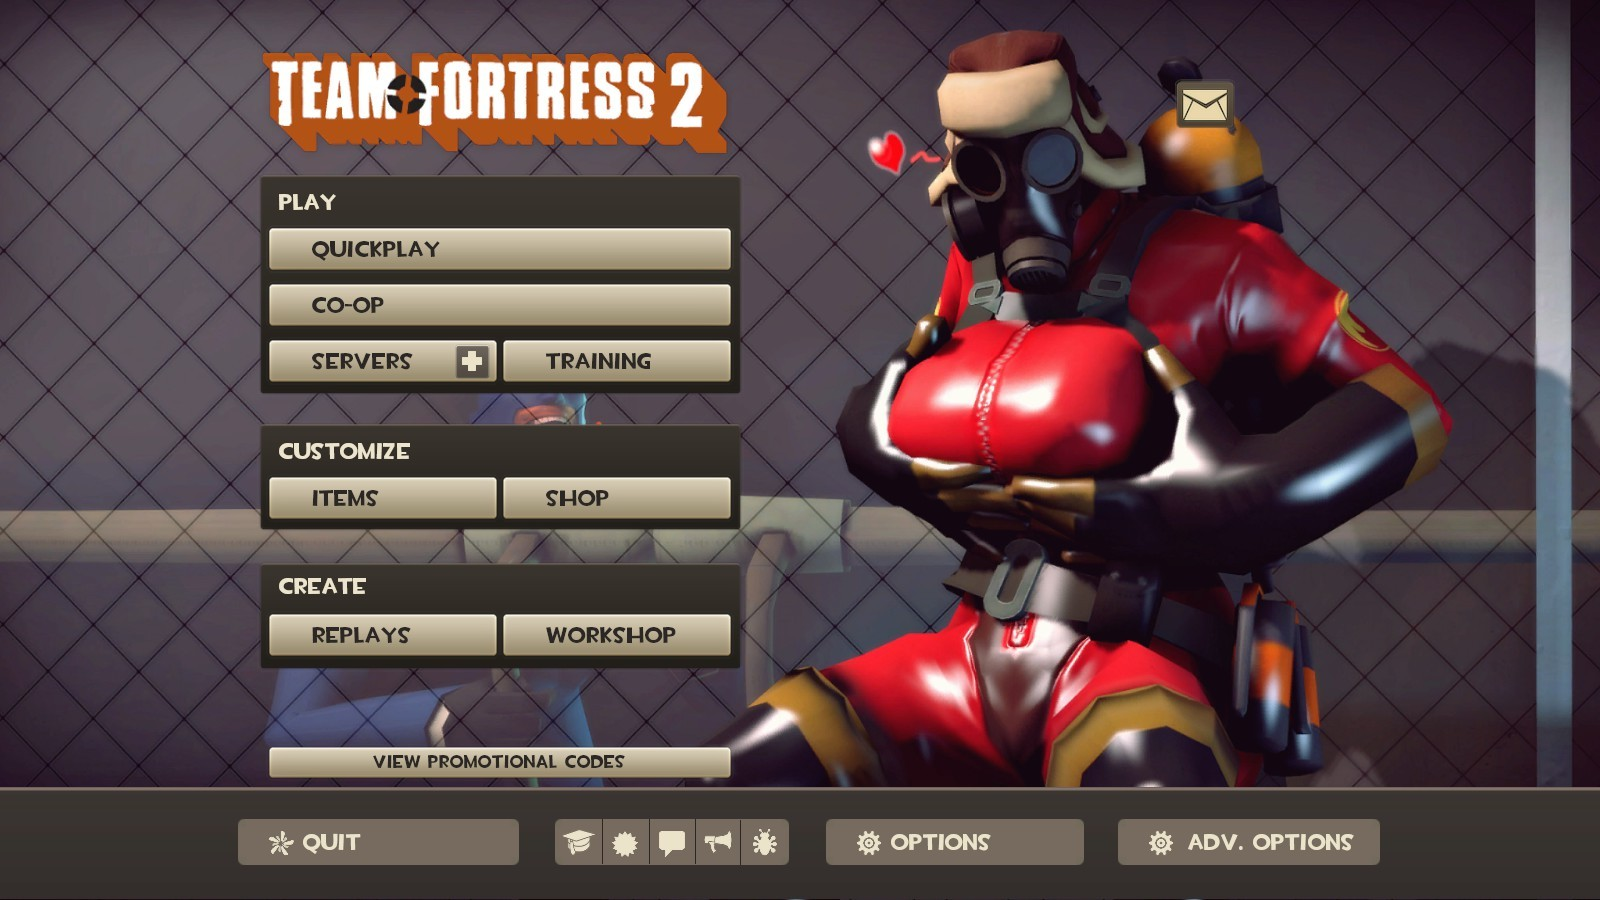 Pyro Backgrounds SFM Team Fortress 2 GUIs Menu 1600x900